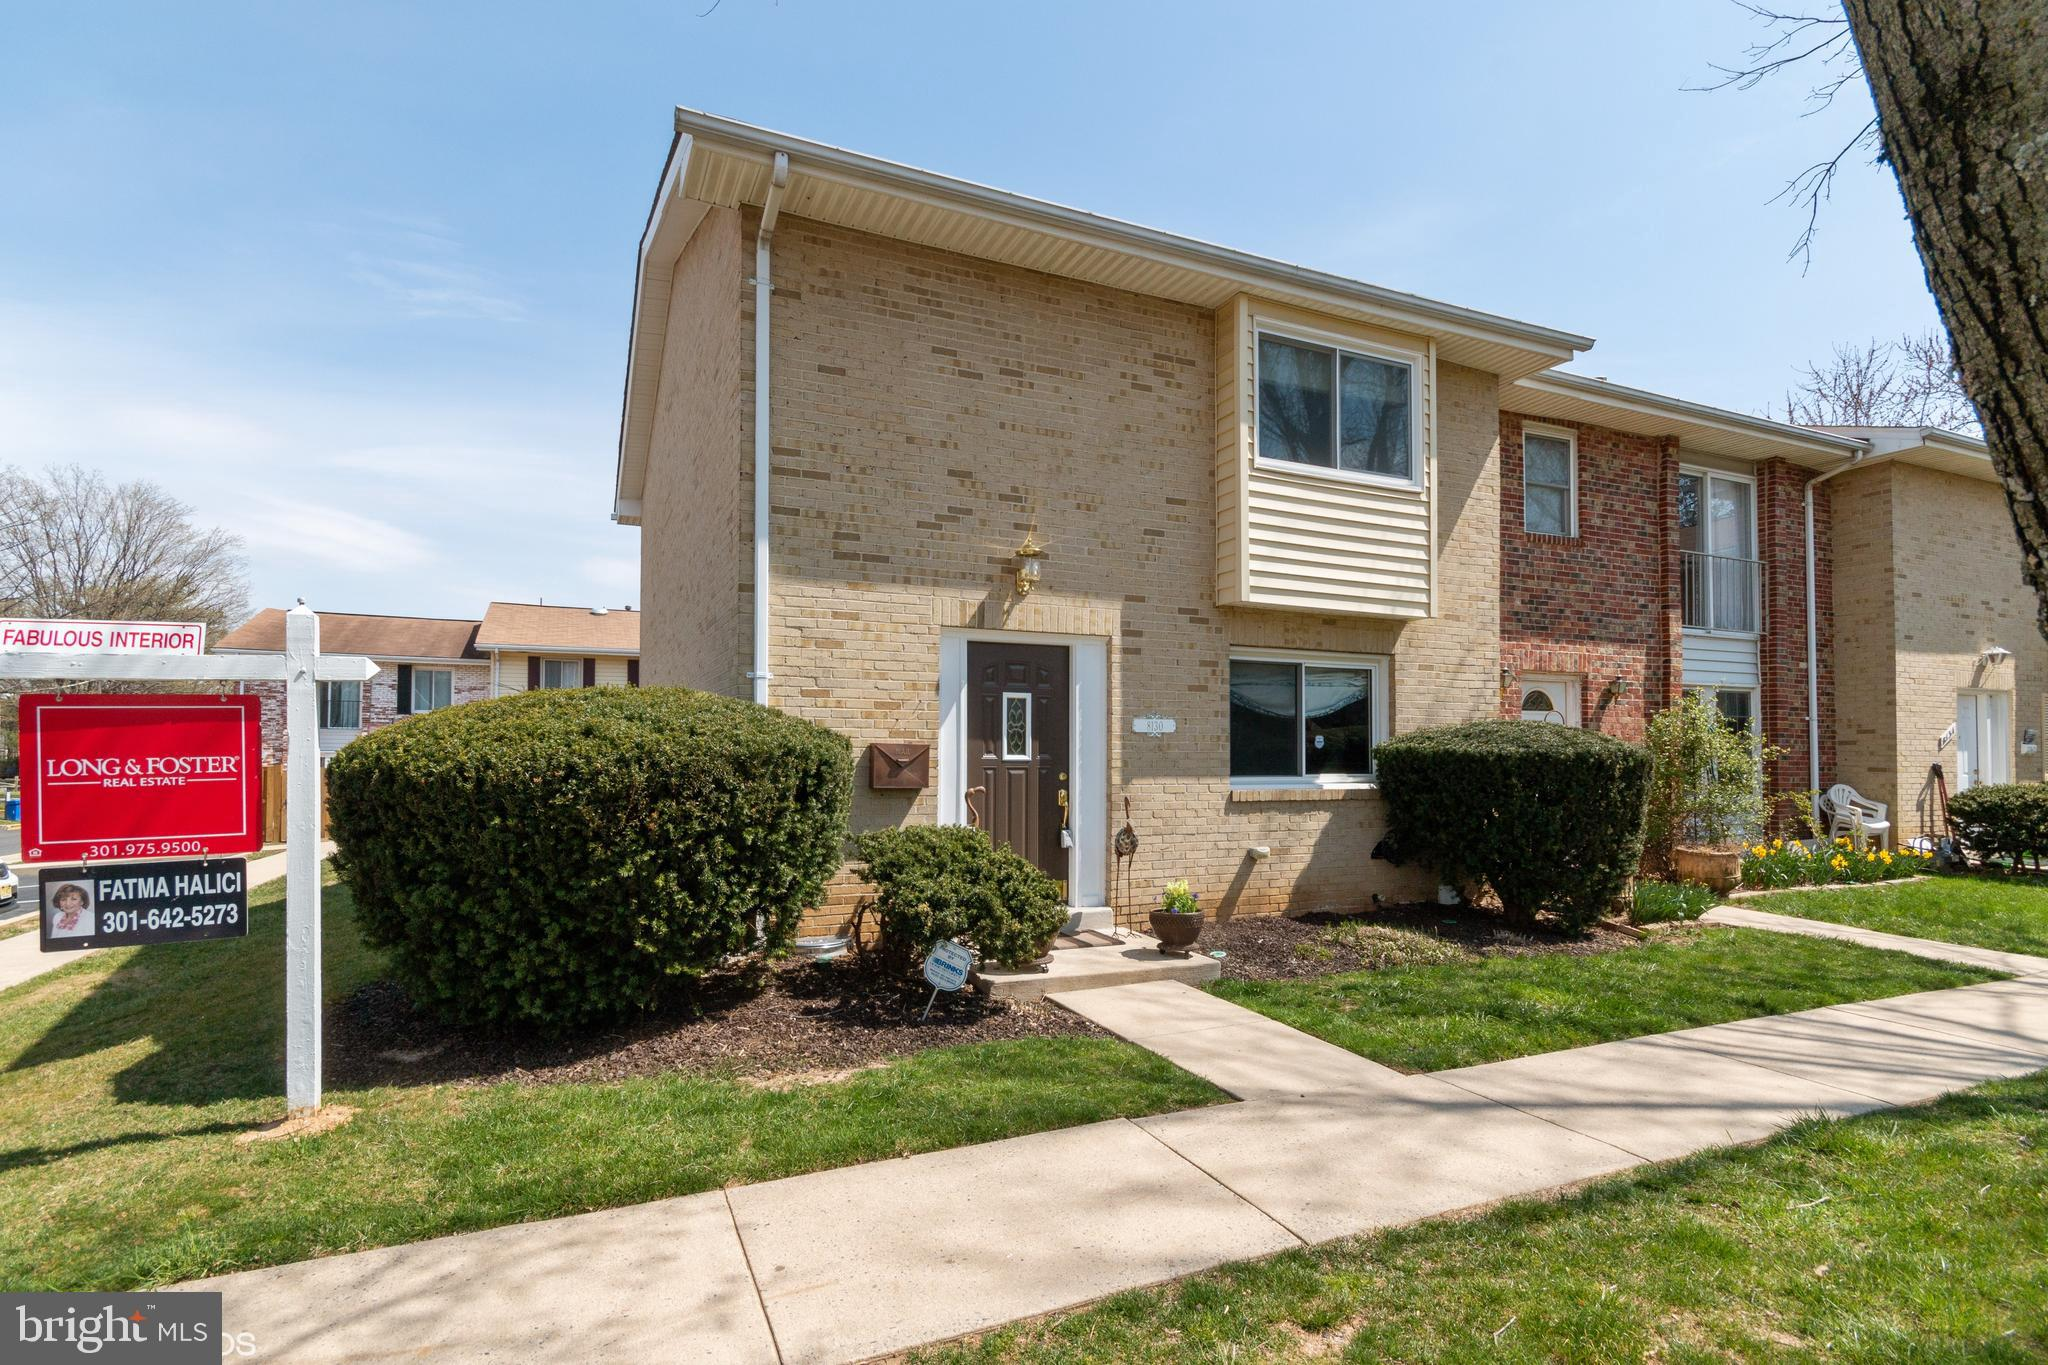 End unit town home futures 3 bedrooms, 2full, 2 half baths. Large table space kirchen, updated/remod